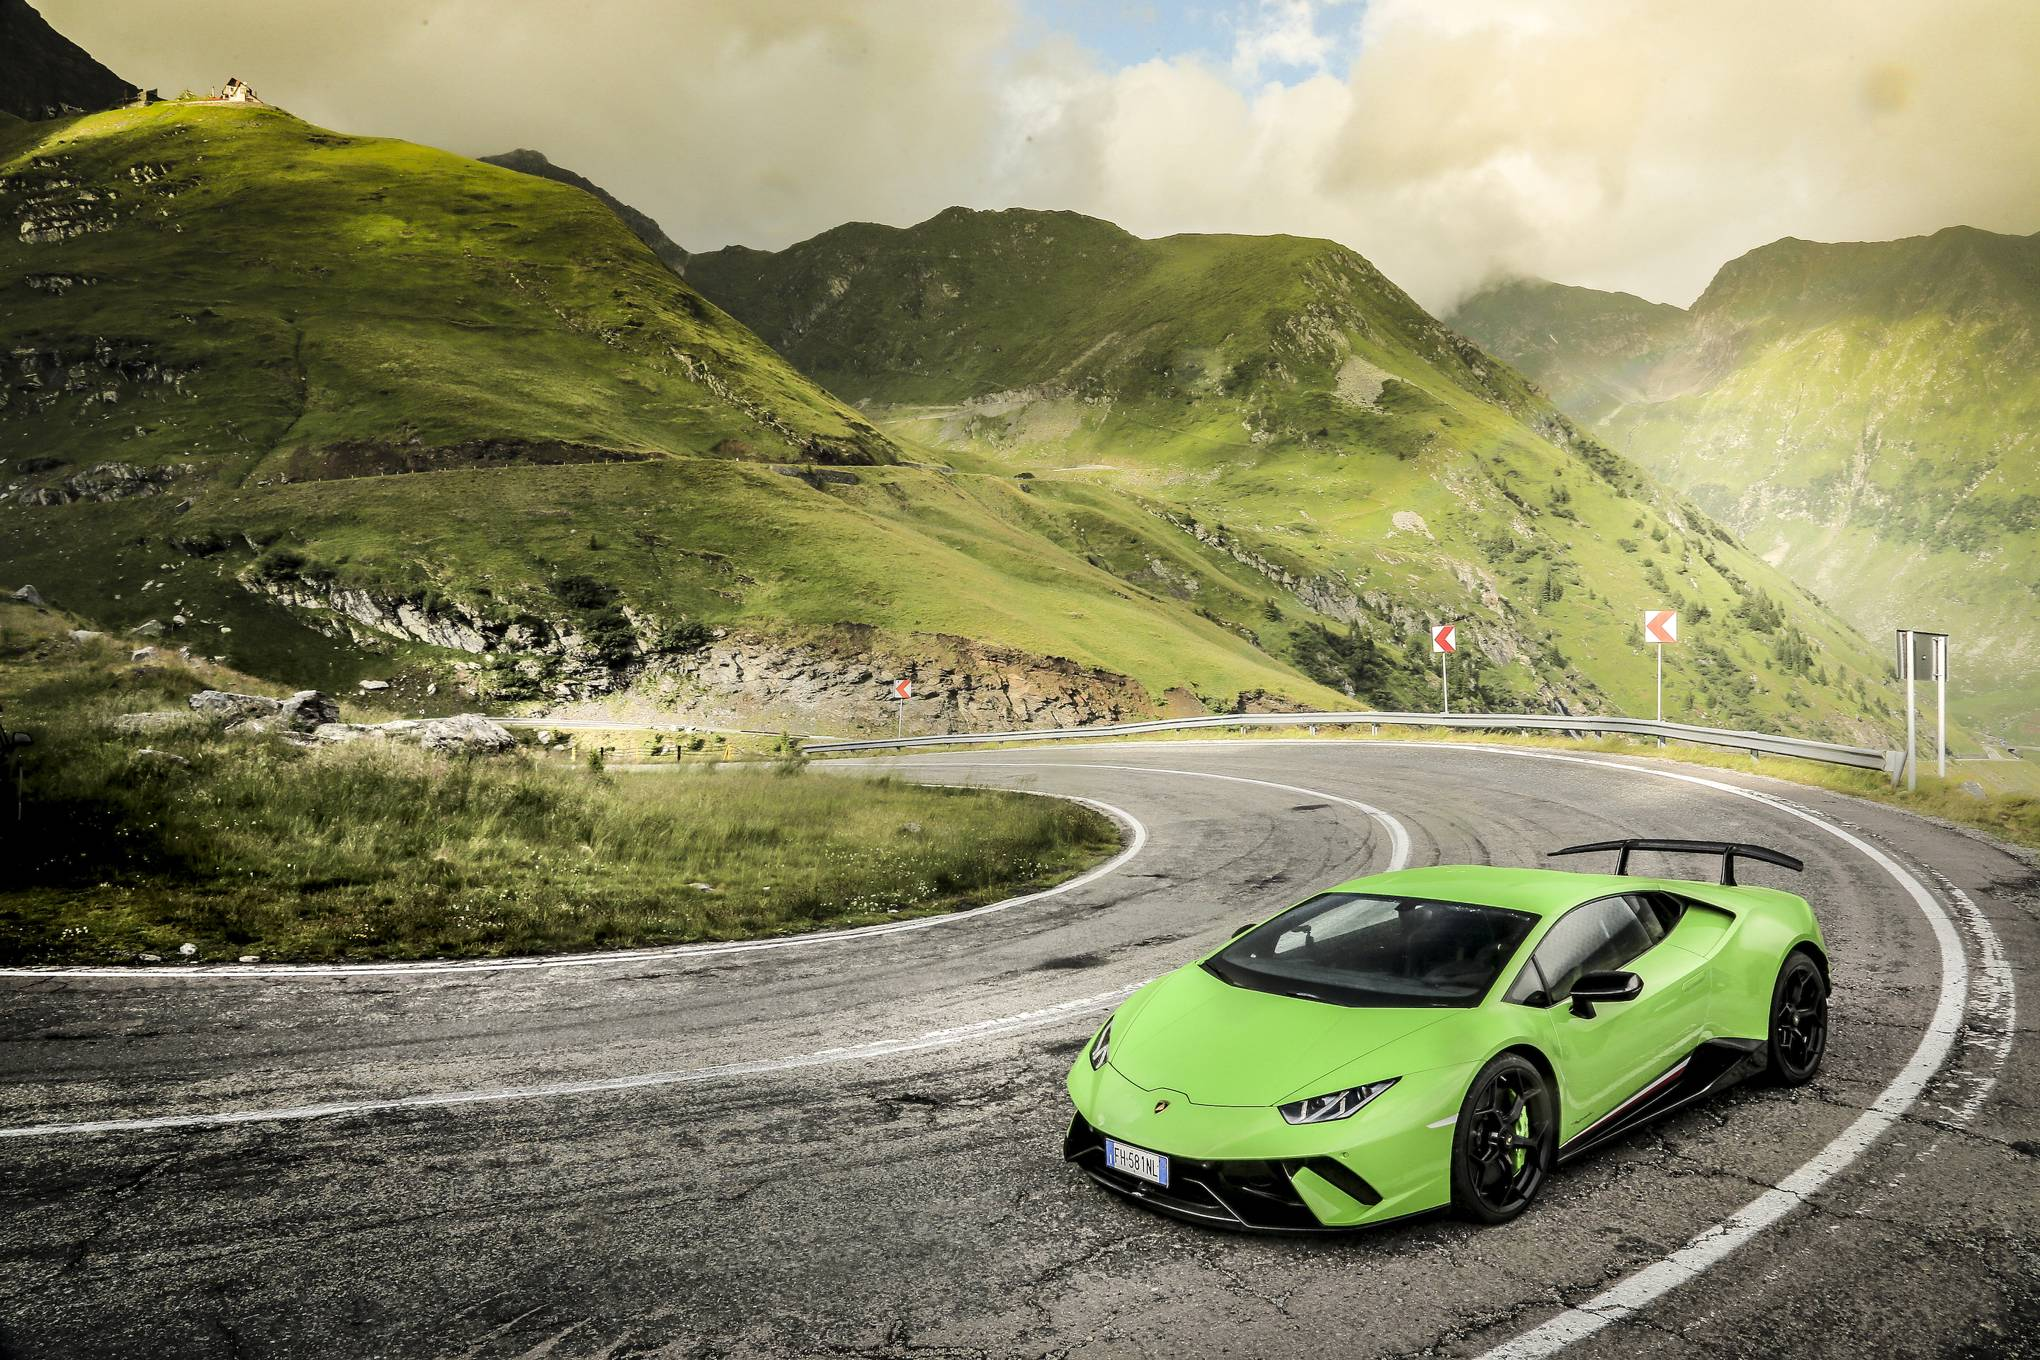 Lamborghini Huracán Performante Review: The Last Of The Old Guard Supercars  | WIRED UK